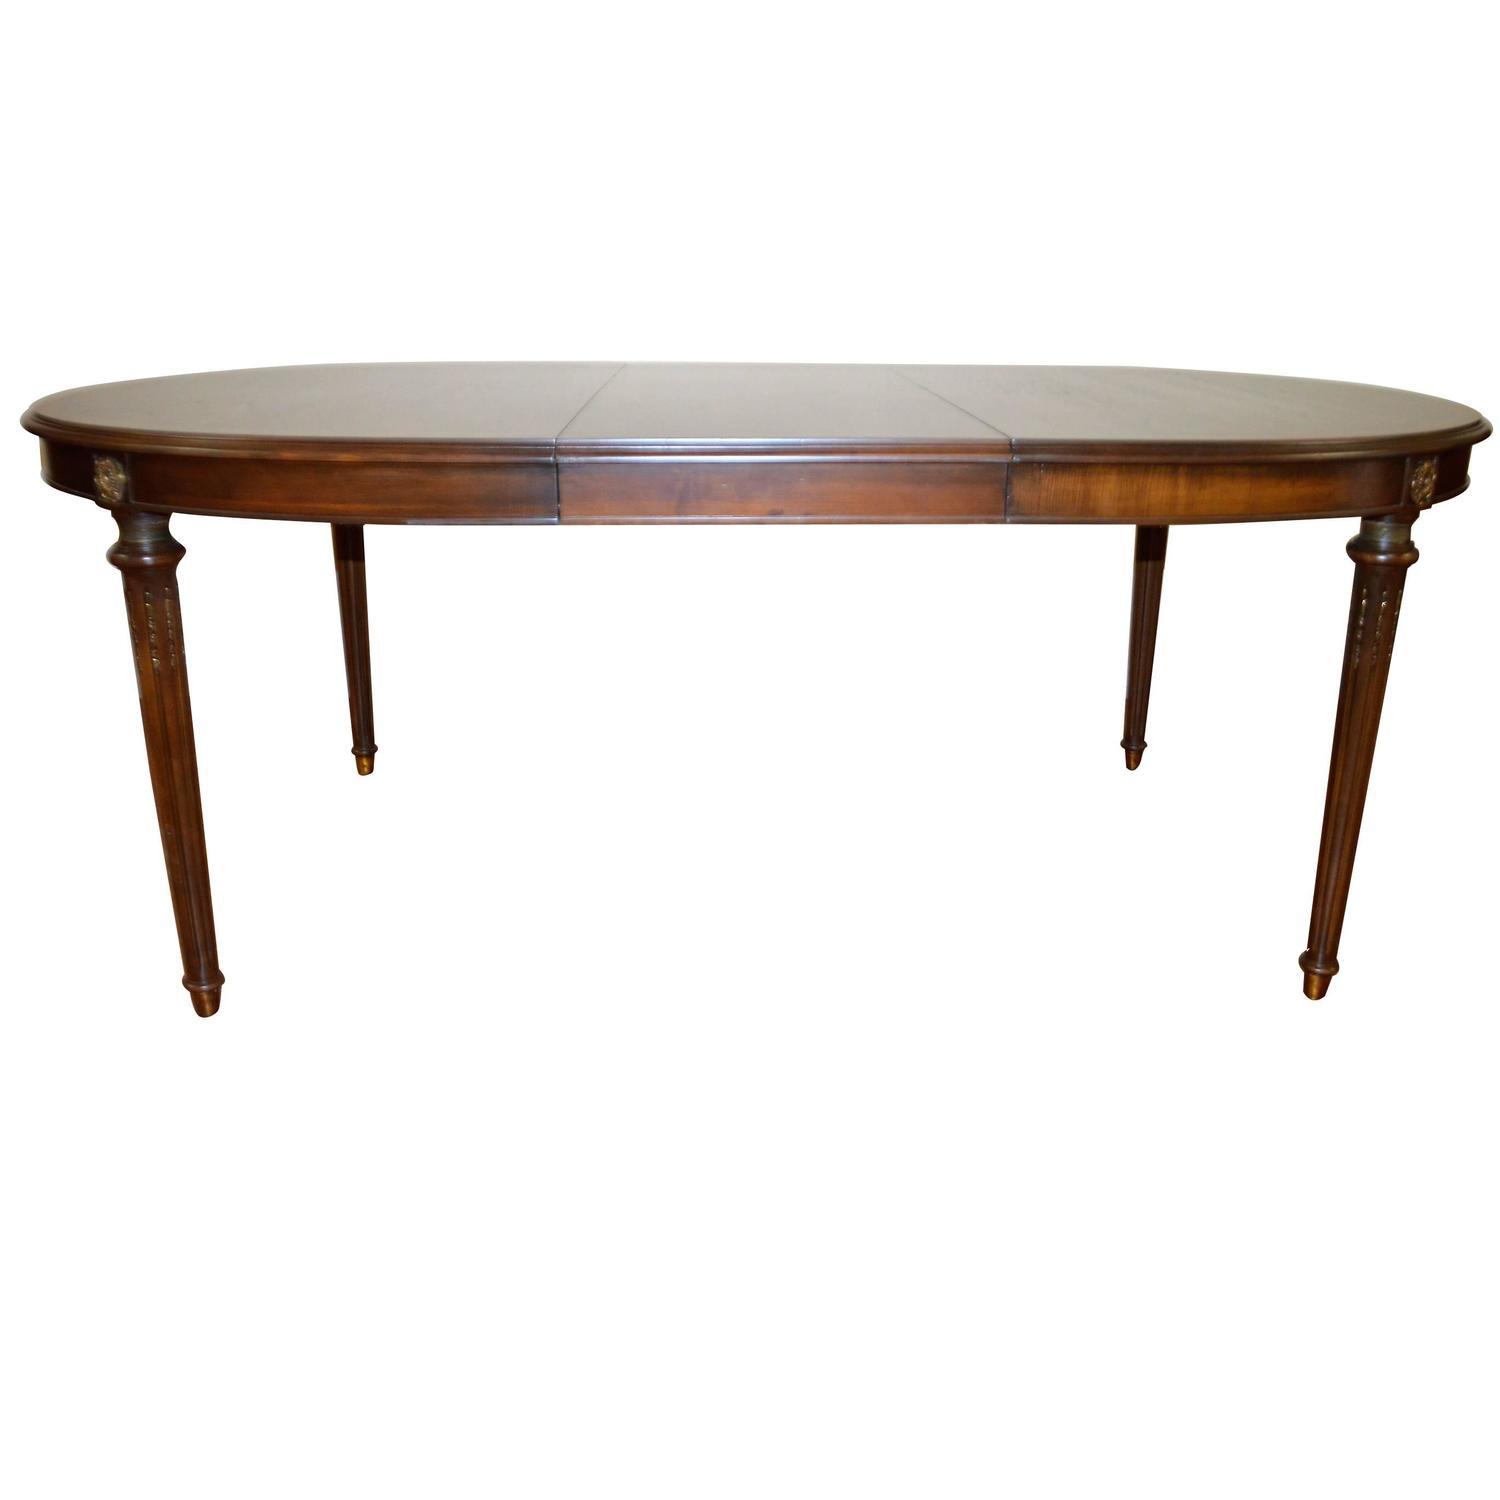 Louis xvi style walnut dining table at 1stdibs for Walnut dining table